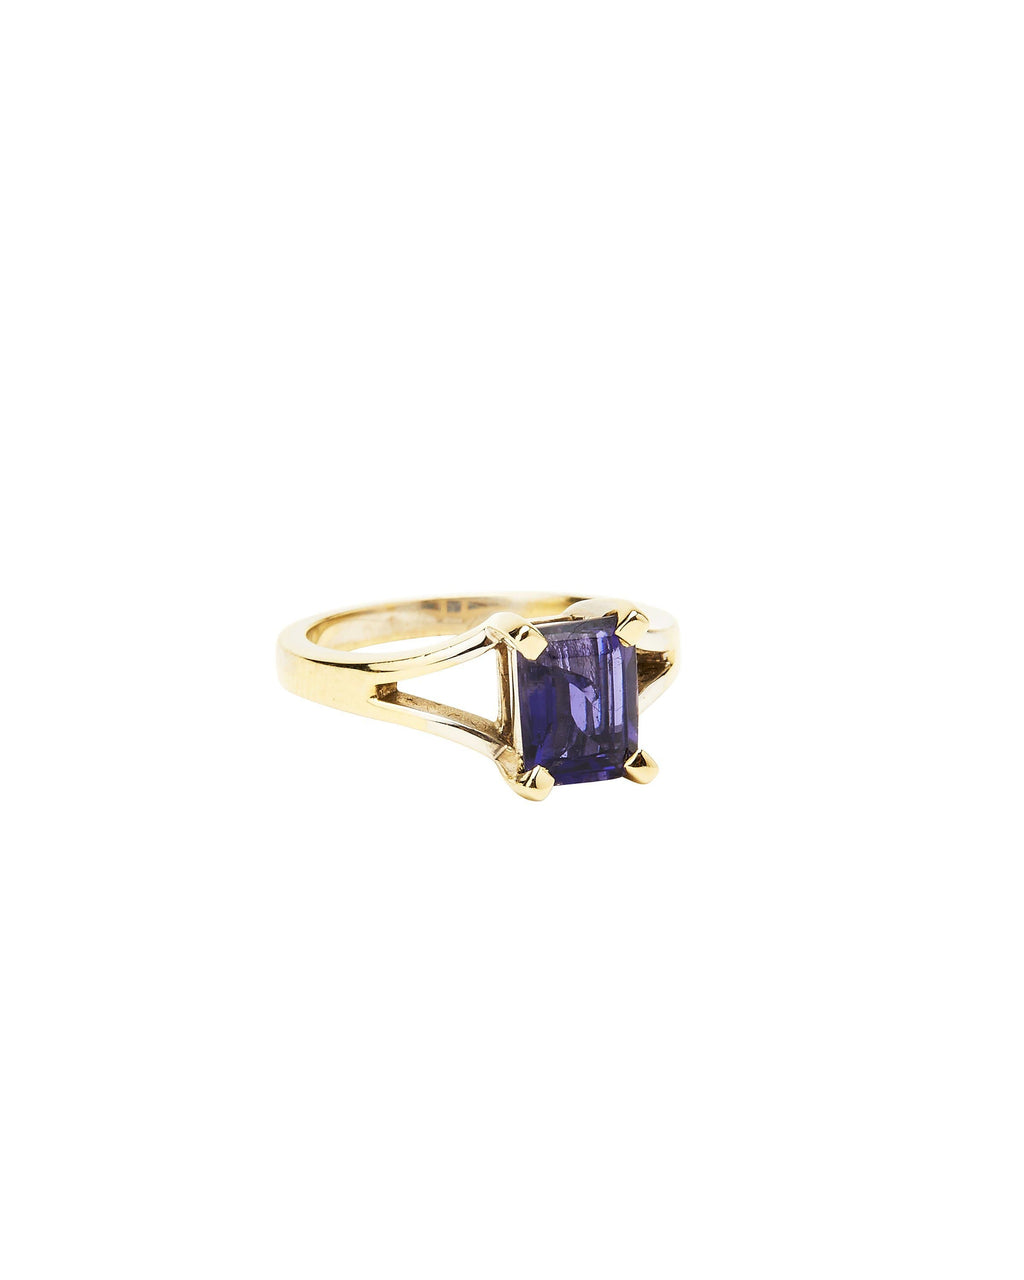 Iolite on 14k White Gold